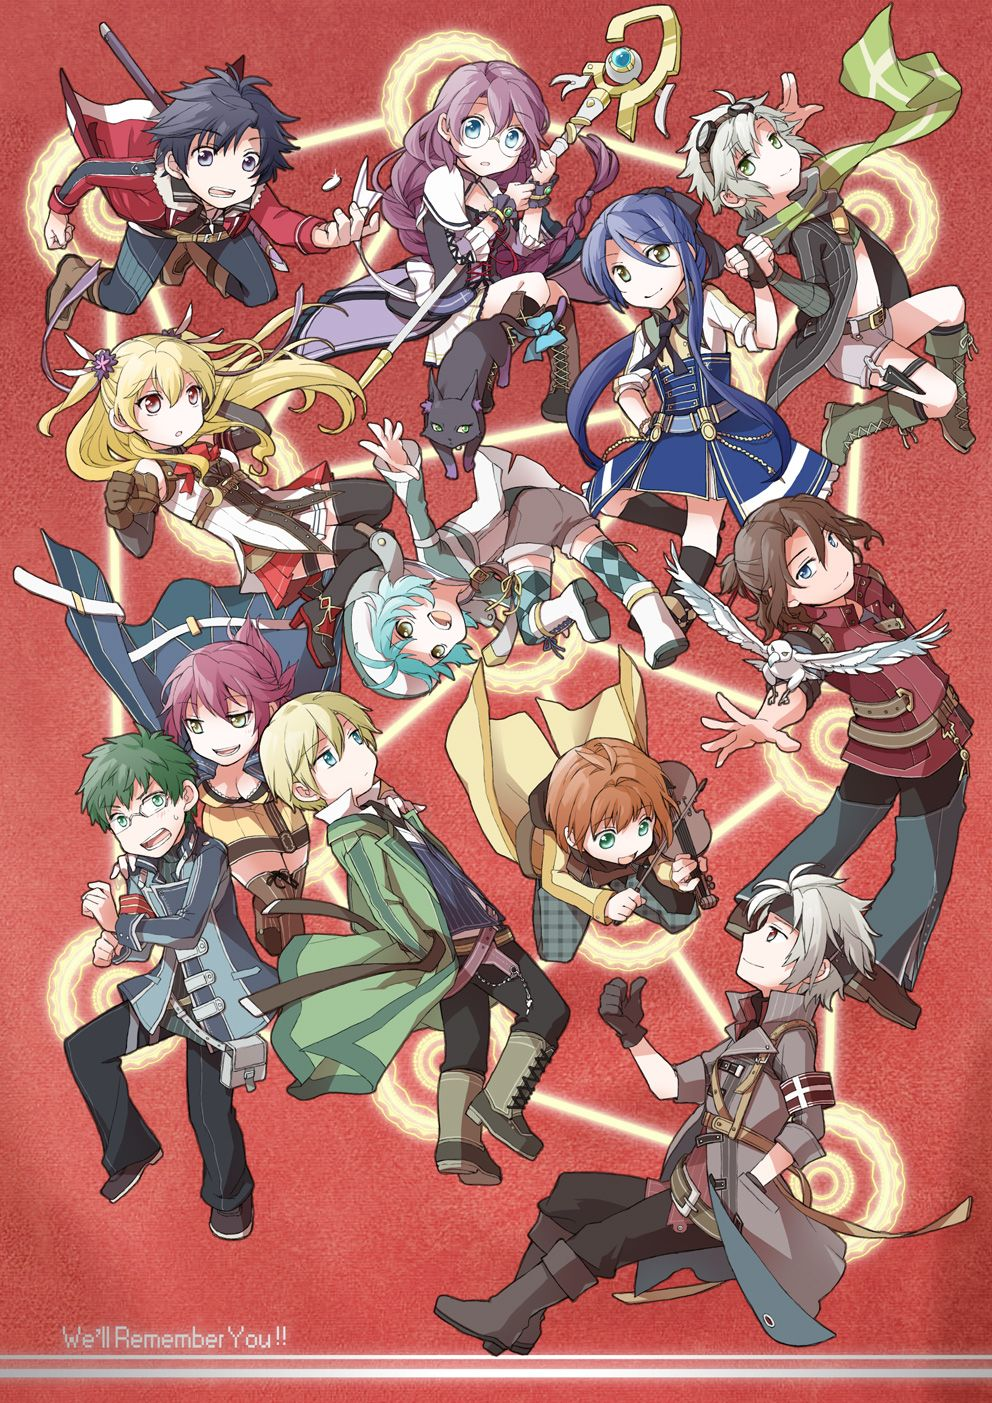 Cold Steel Chibi Style Trails Of Cold Steel Anime Art Girl Anime